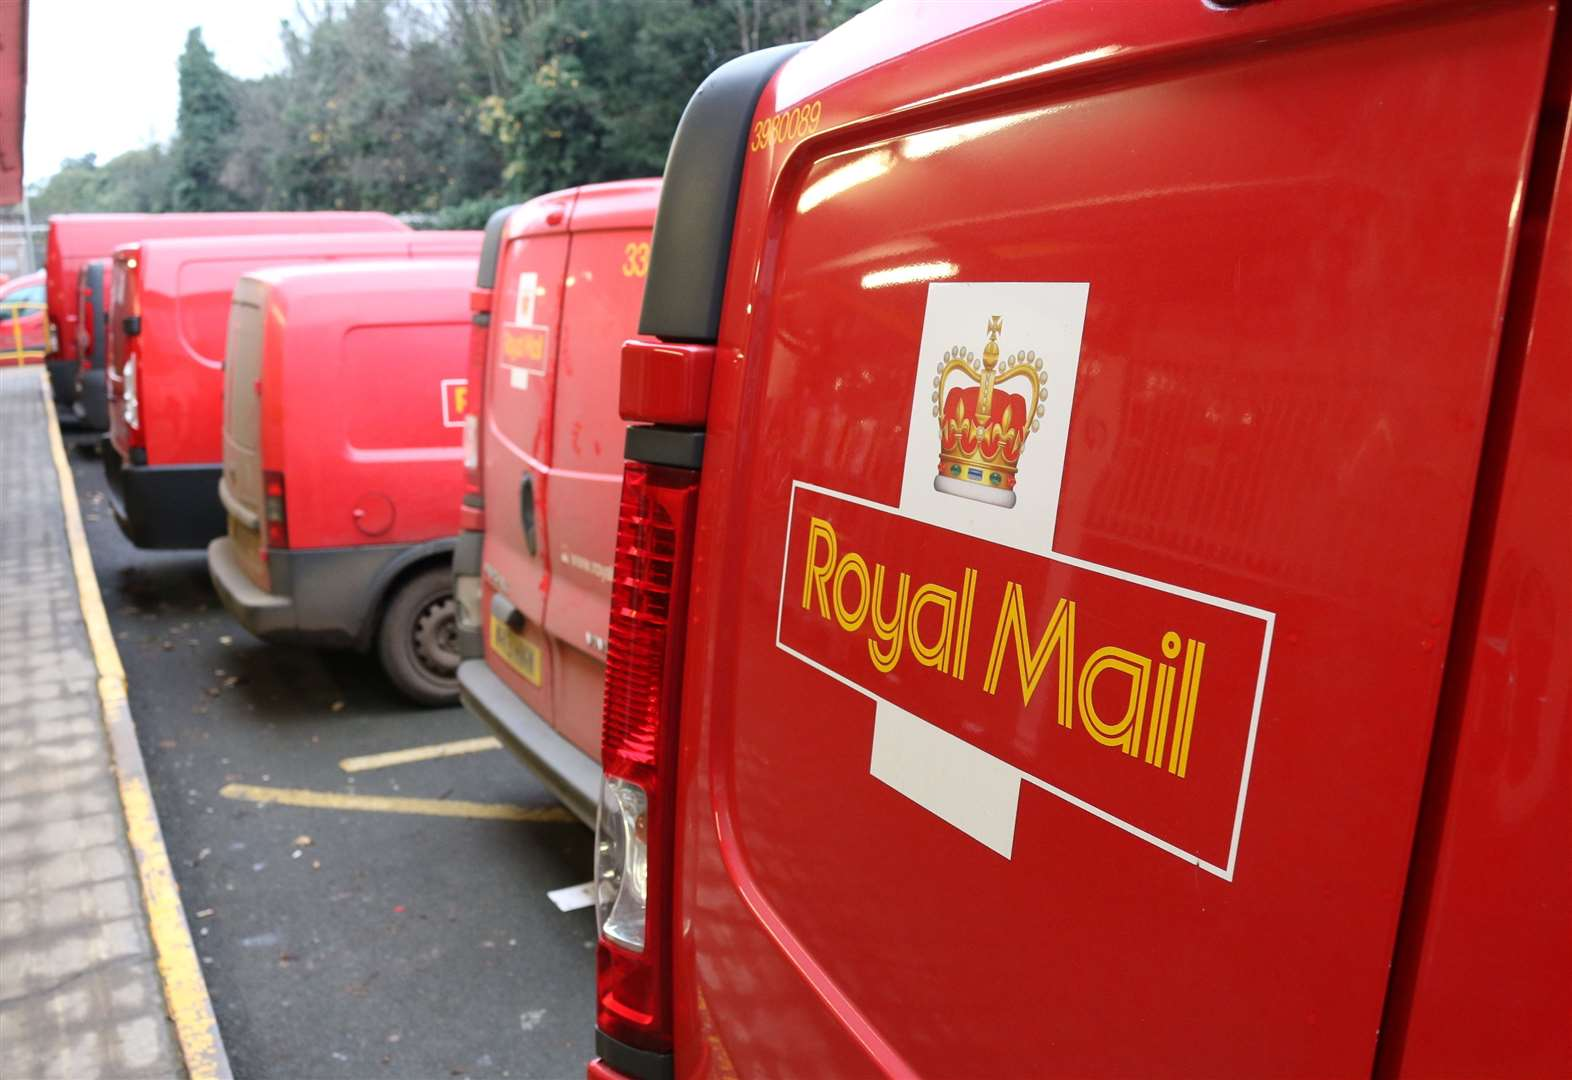 Royal Mail staff returns to work after strike